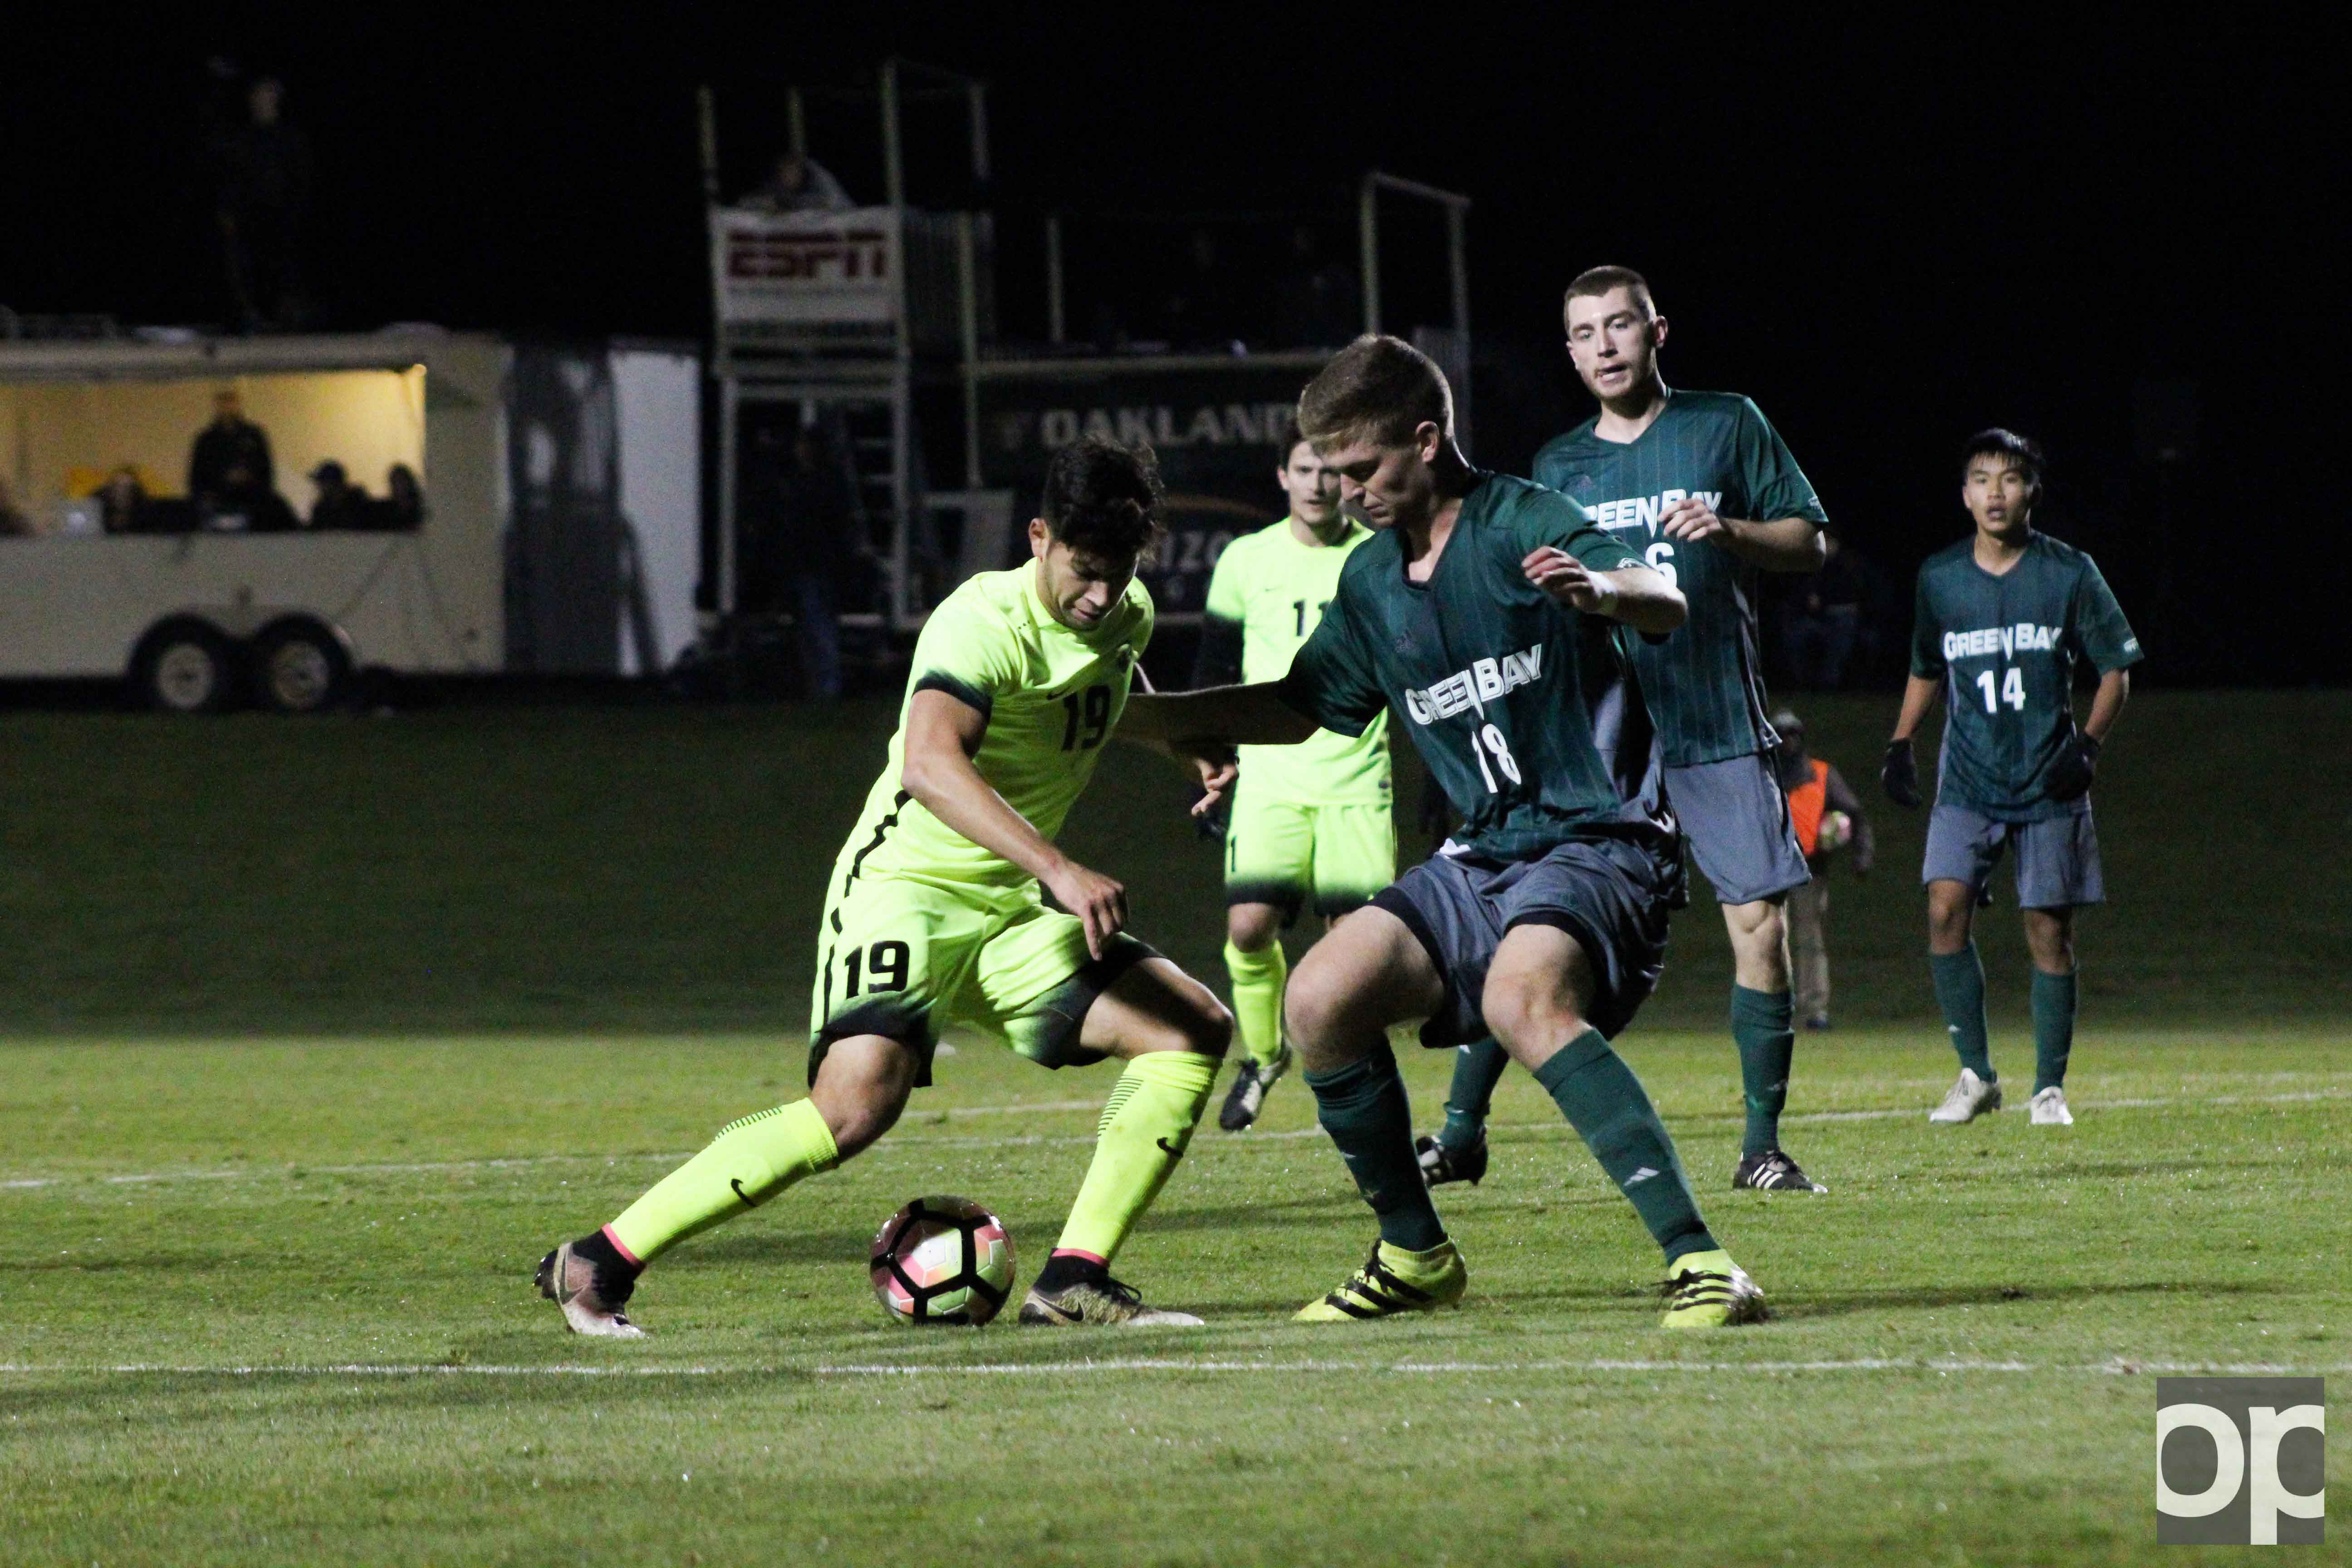 Austin Ricci scored the lone goal assisted by AJ Shaw leading the Golden Grizzlies to the Horizon League Semifinals Monday night at the Oakland soccer field.